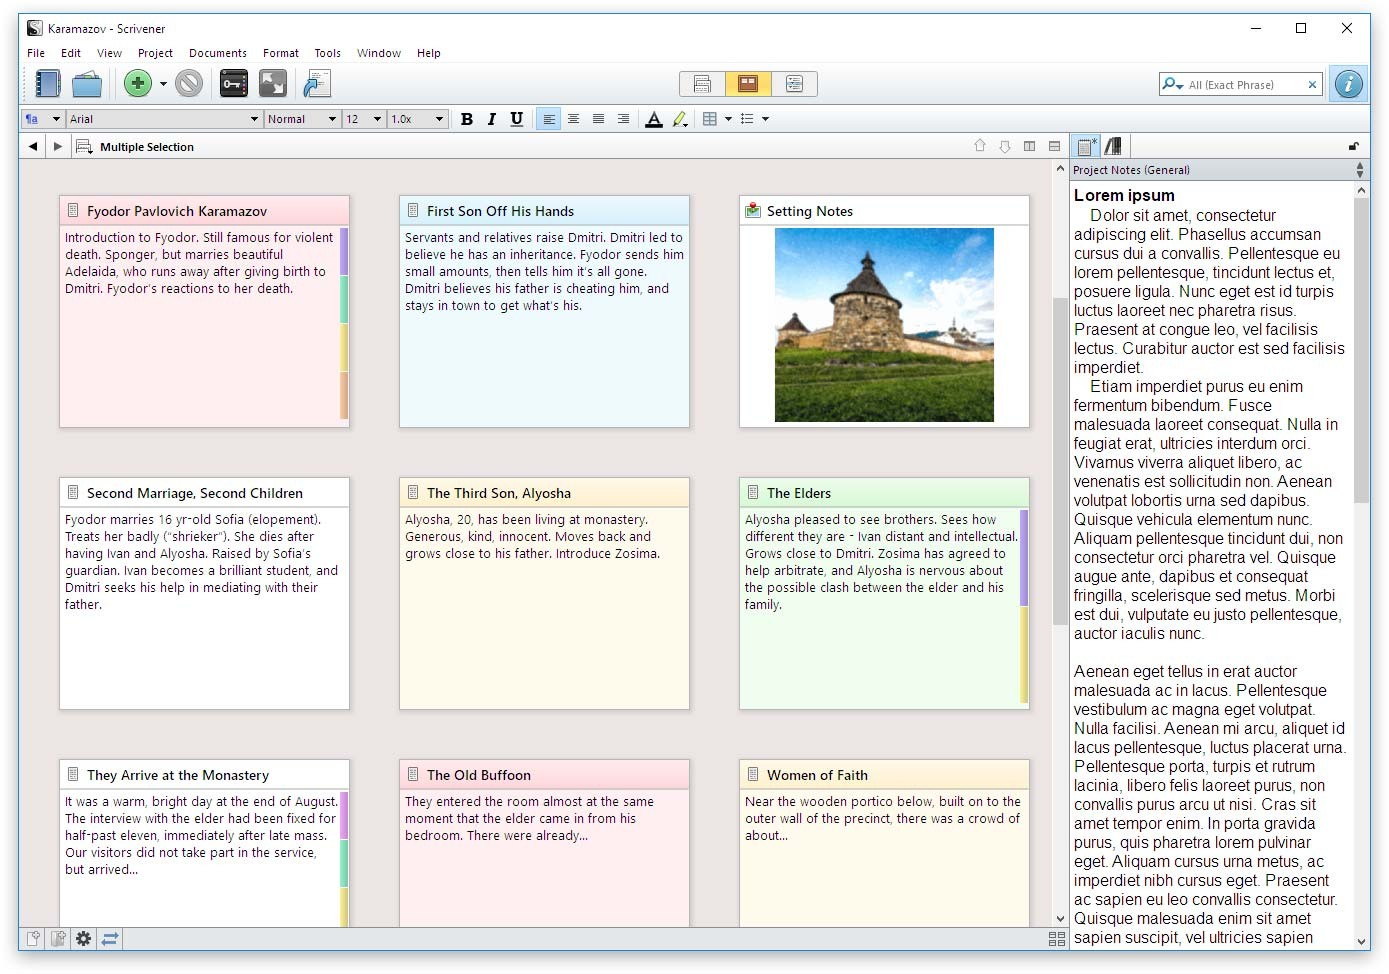 Corkboard Inpector in Scrivener